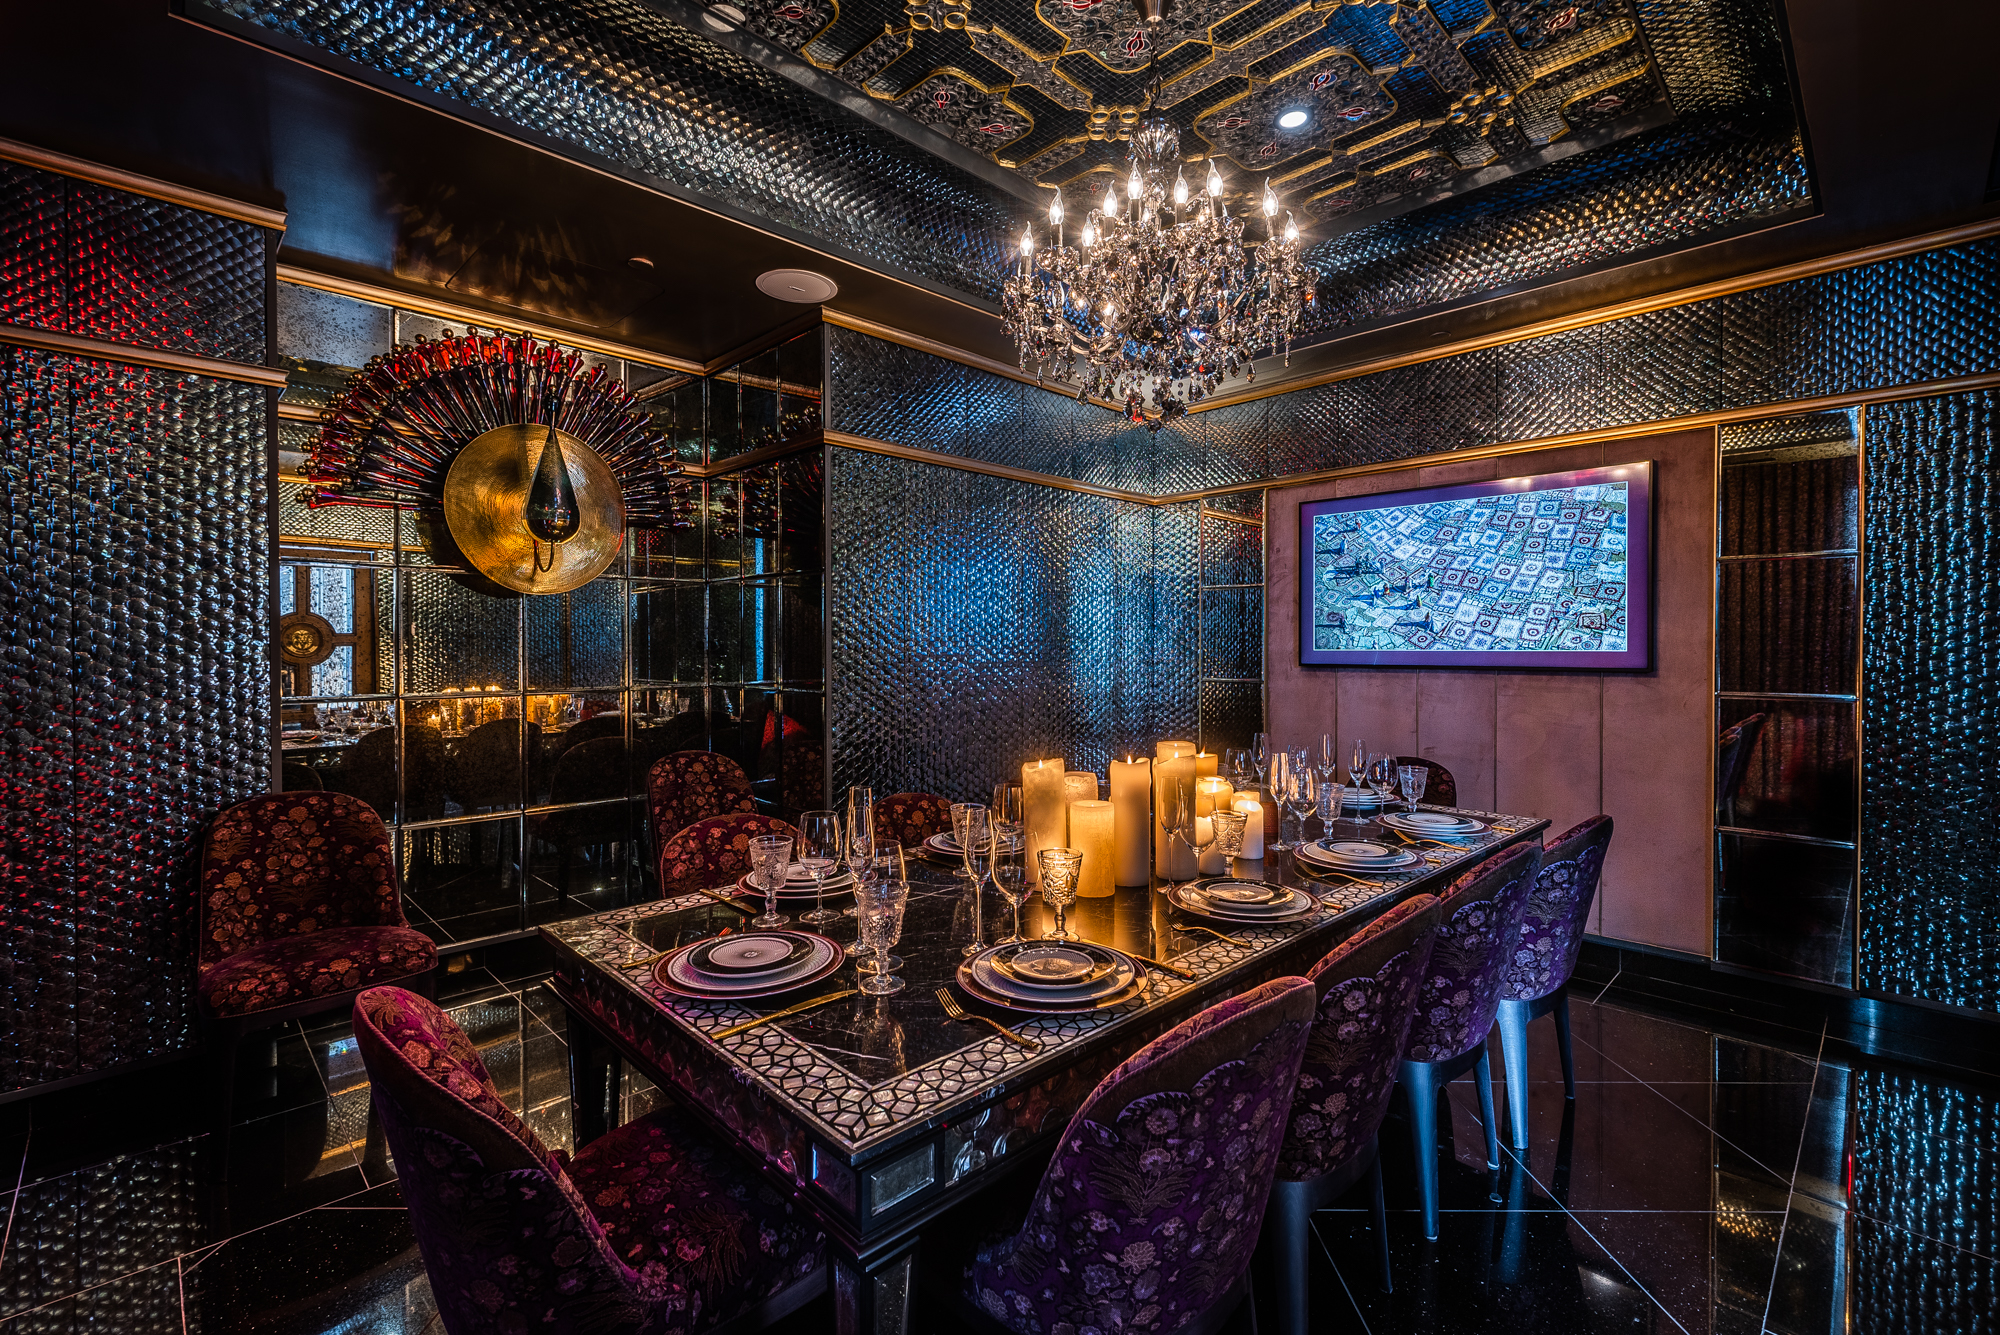 A private dining room at Punjab Grill is covered in 150,000 hand-laid mirrors.